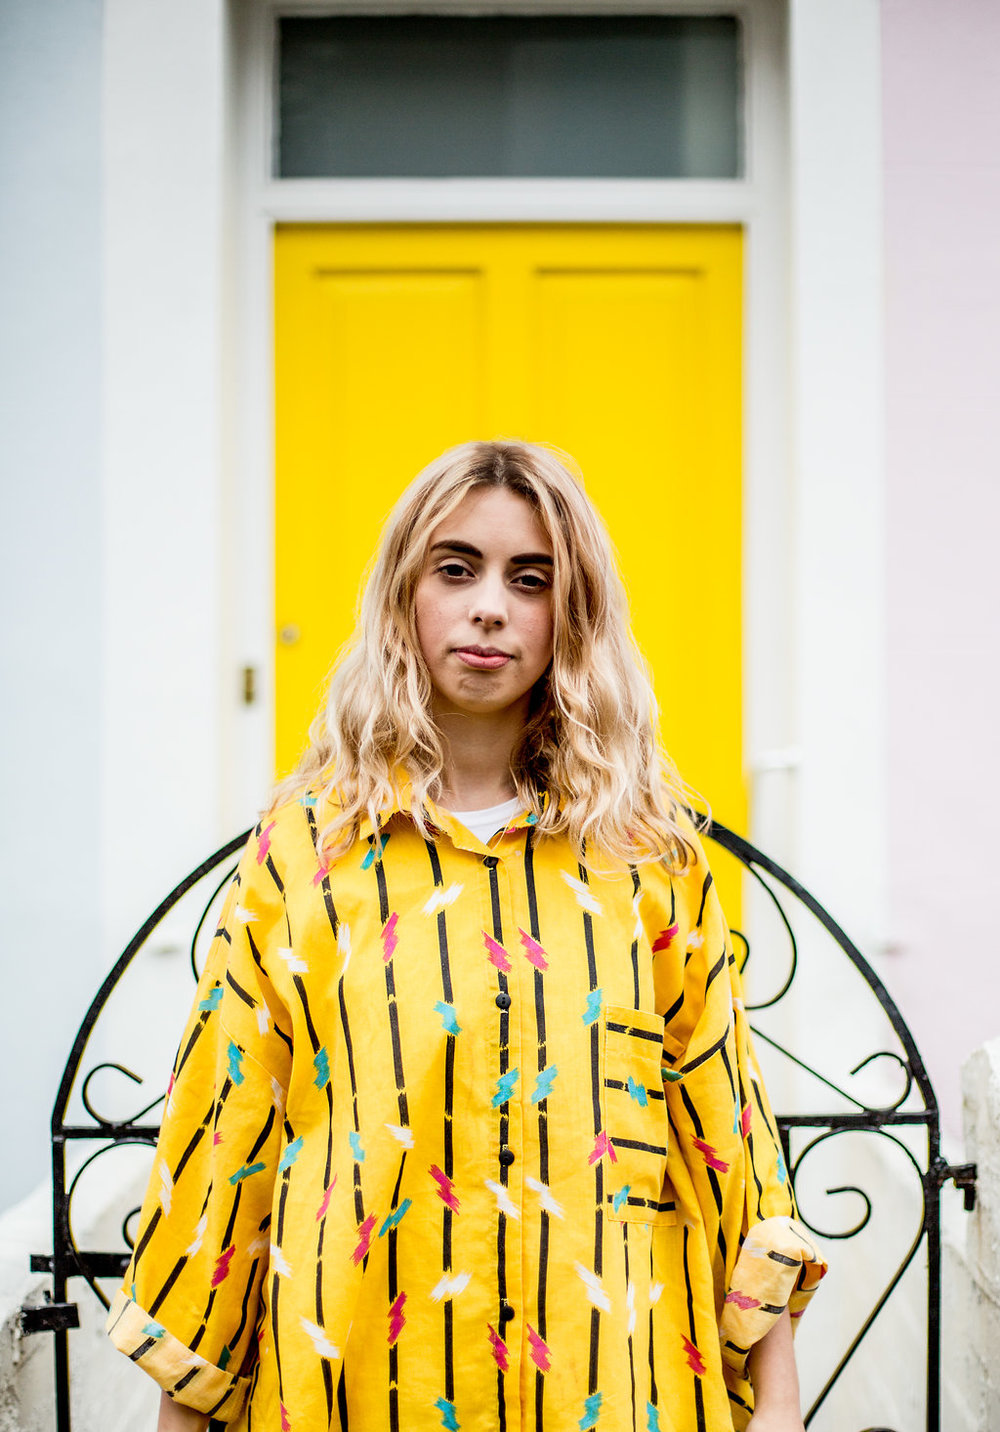 Thrift shop street style // A Week Of Vibrant & Global Outfits With Francesca Willow From Ethical Unicorn on The Good Trade